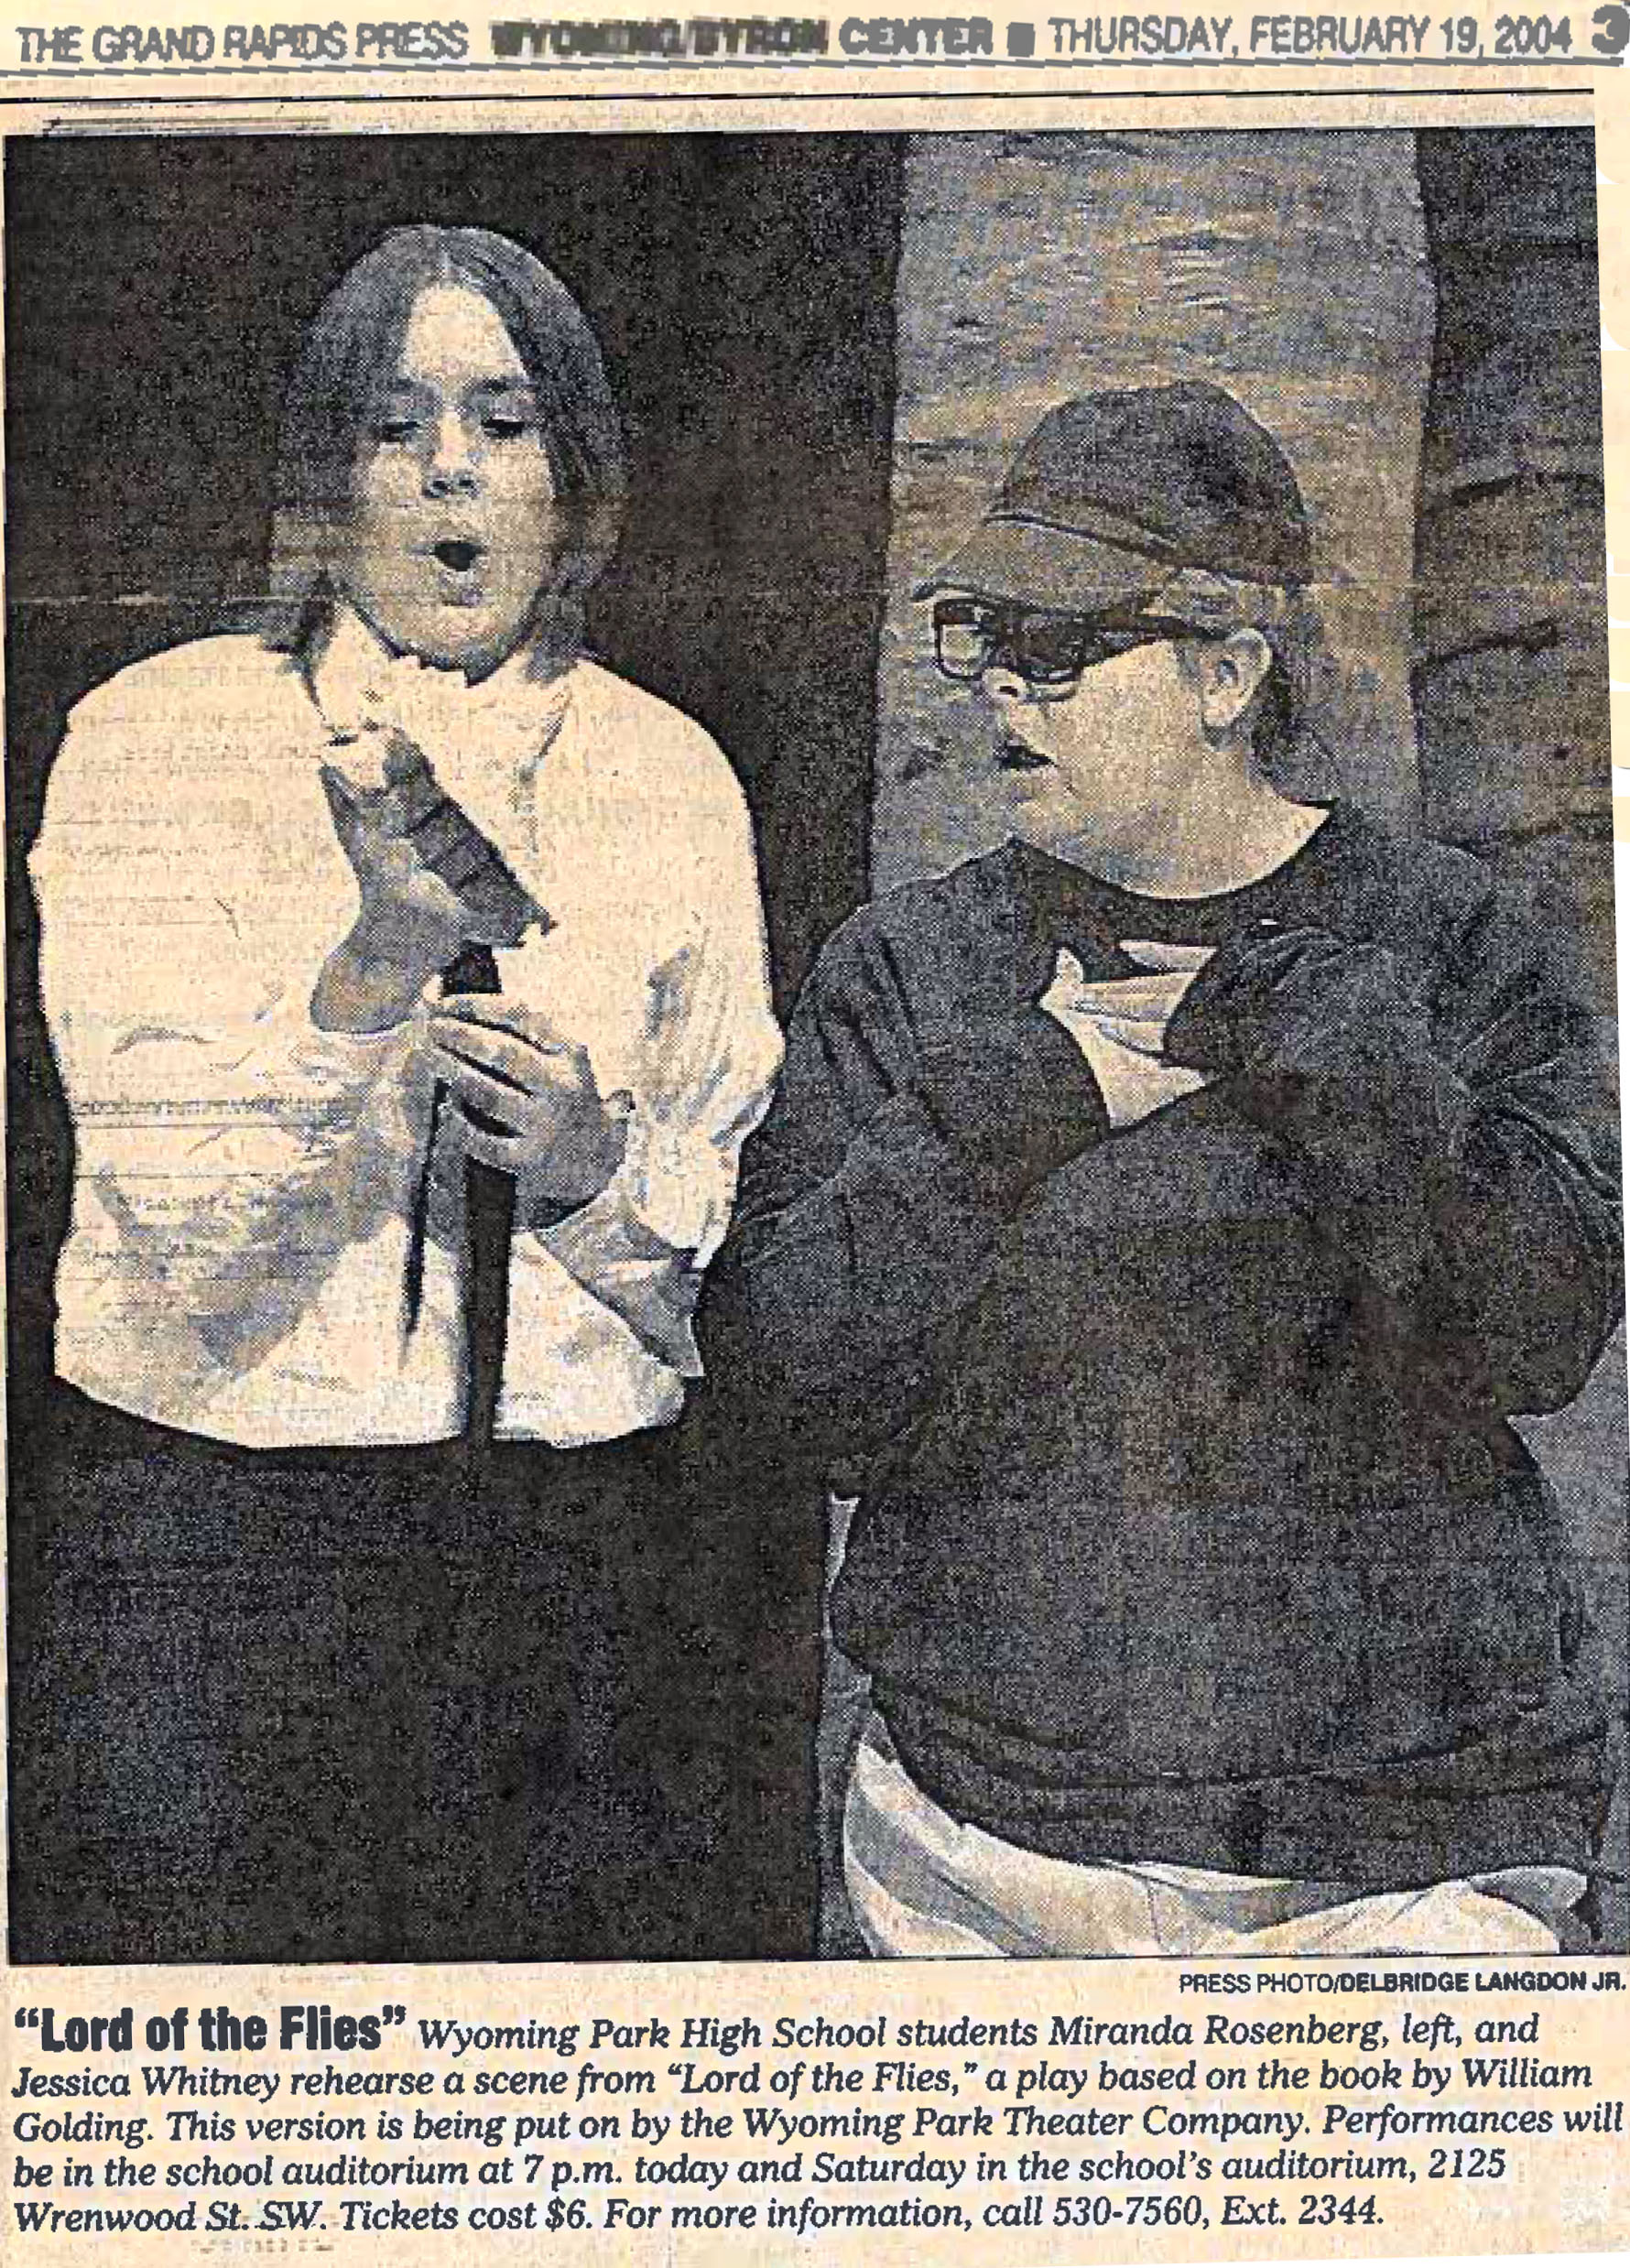 lord of the flies photo in press with mi